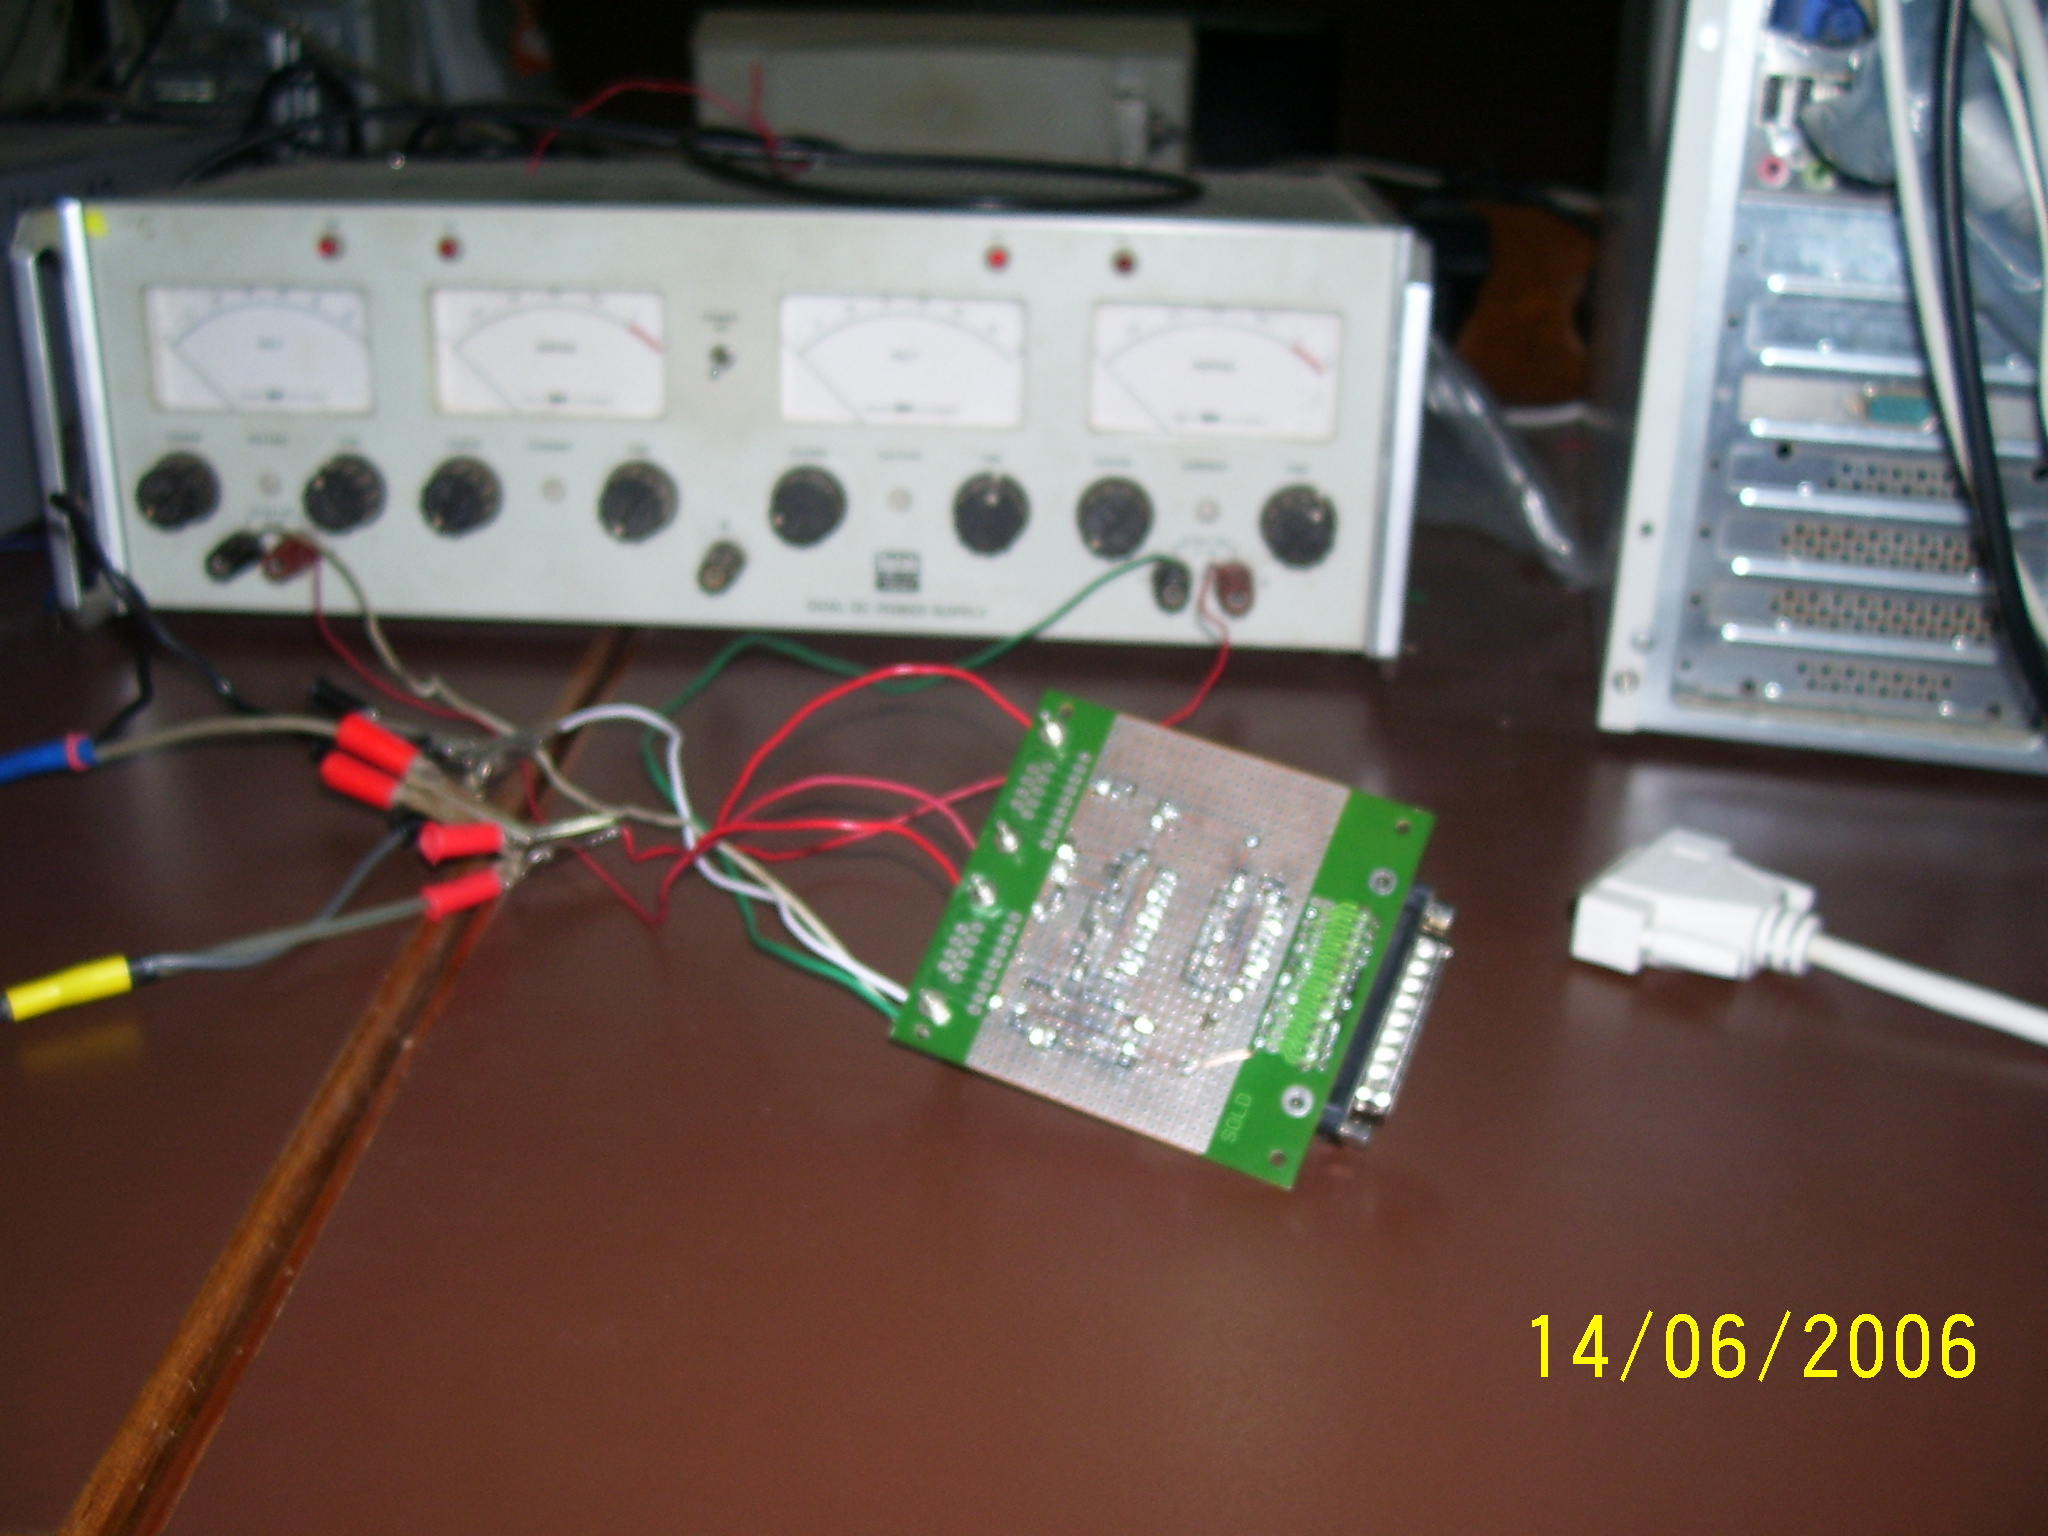 Our Circuit connected to the power supply